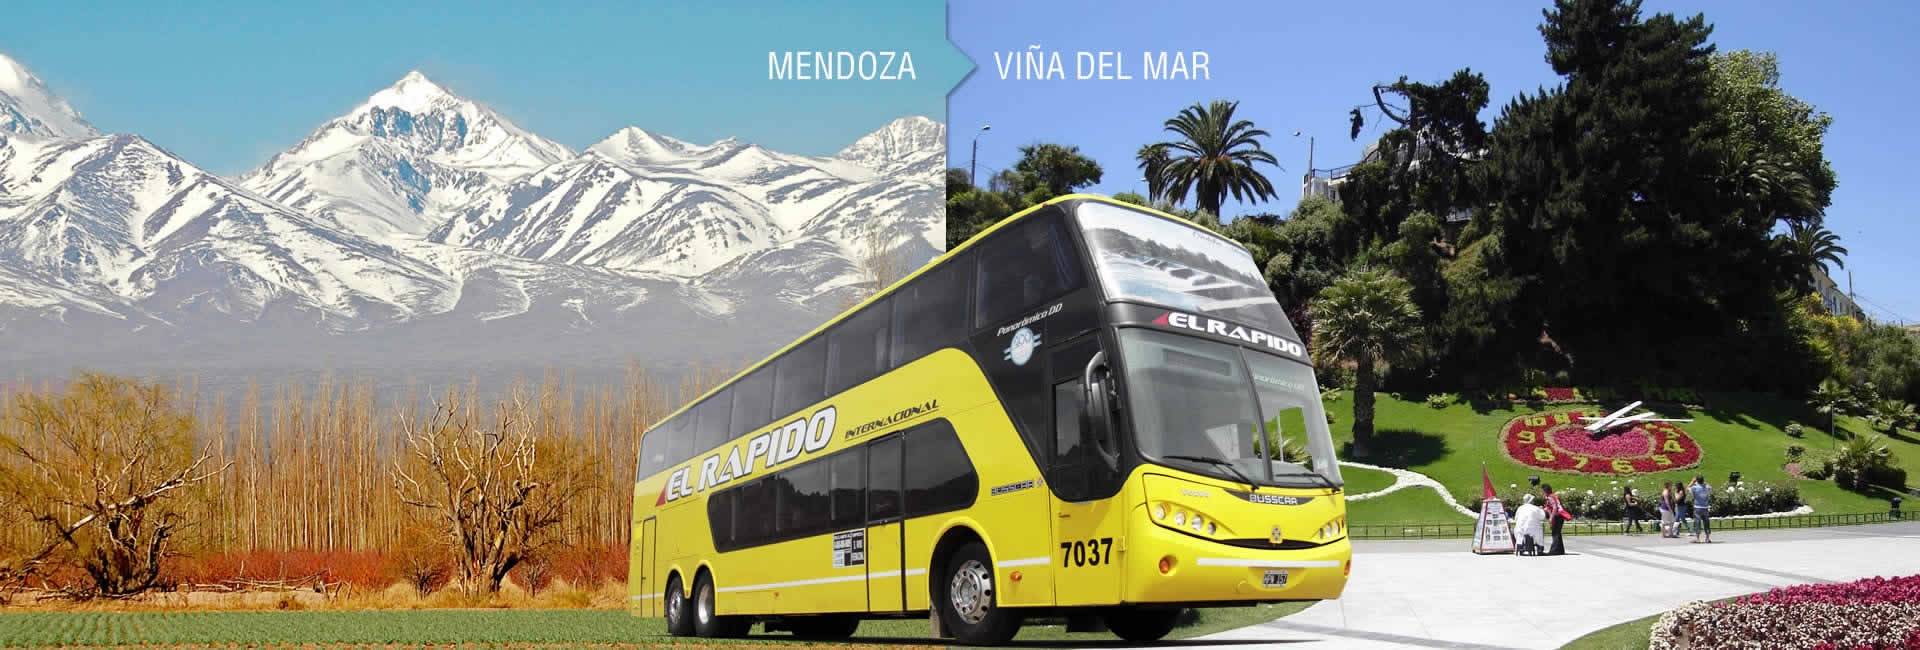 Mendoza - Viña del Mar (Chile) by bus